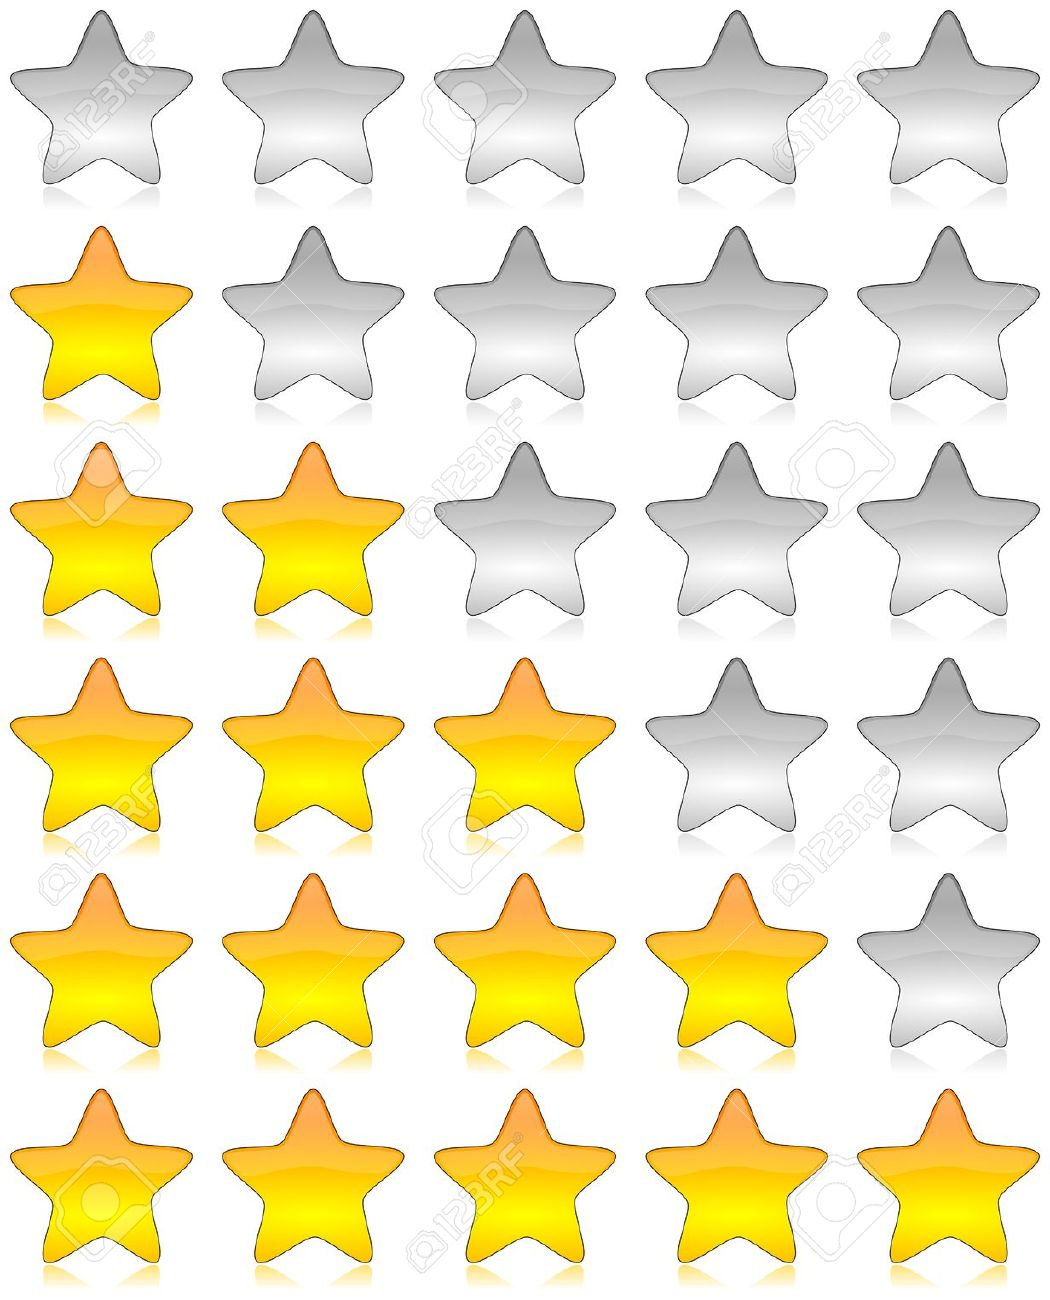 Star Rating Icons Stock Vector - Image: 39156166